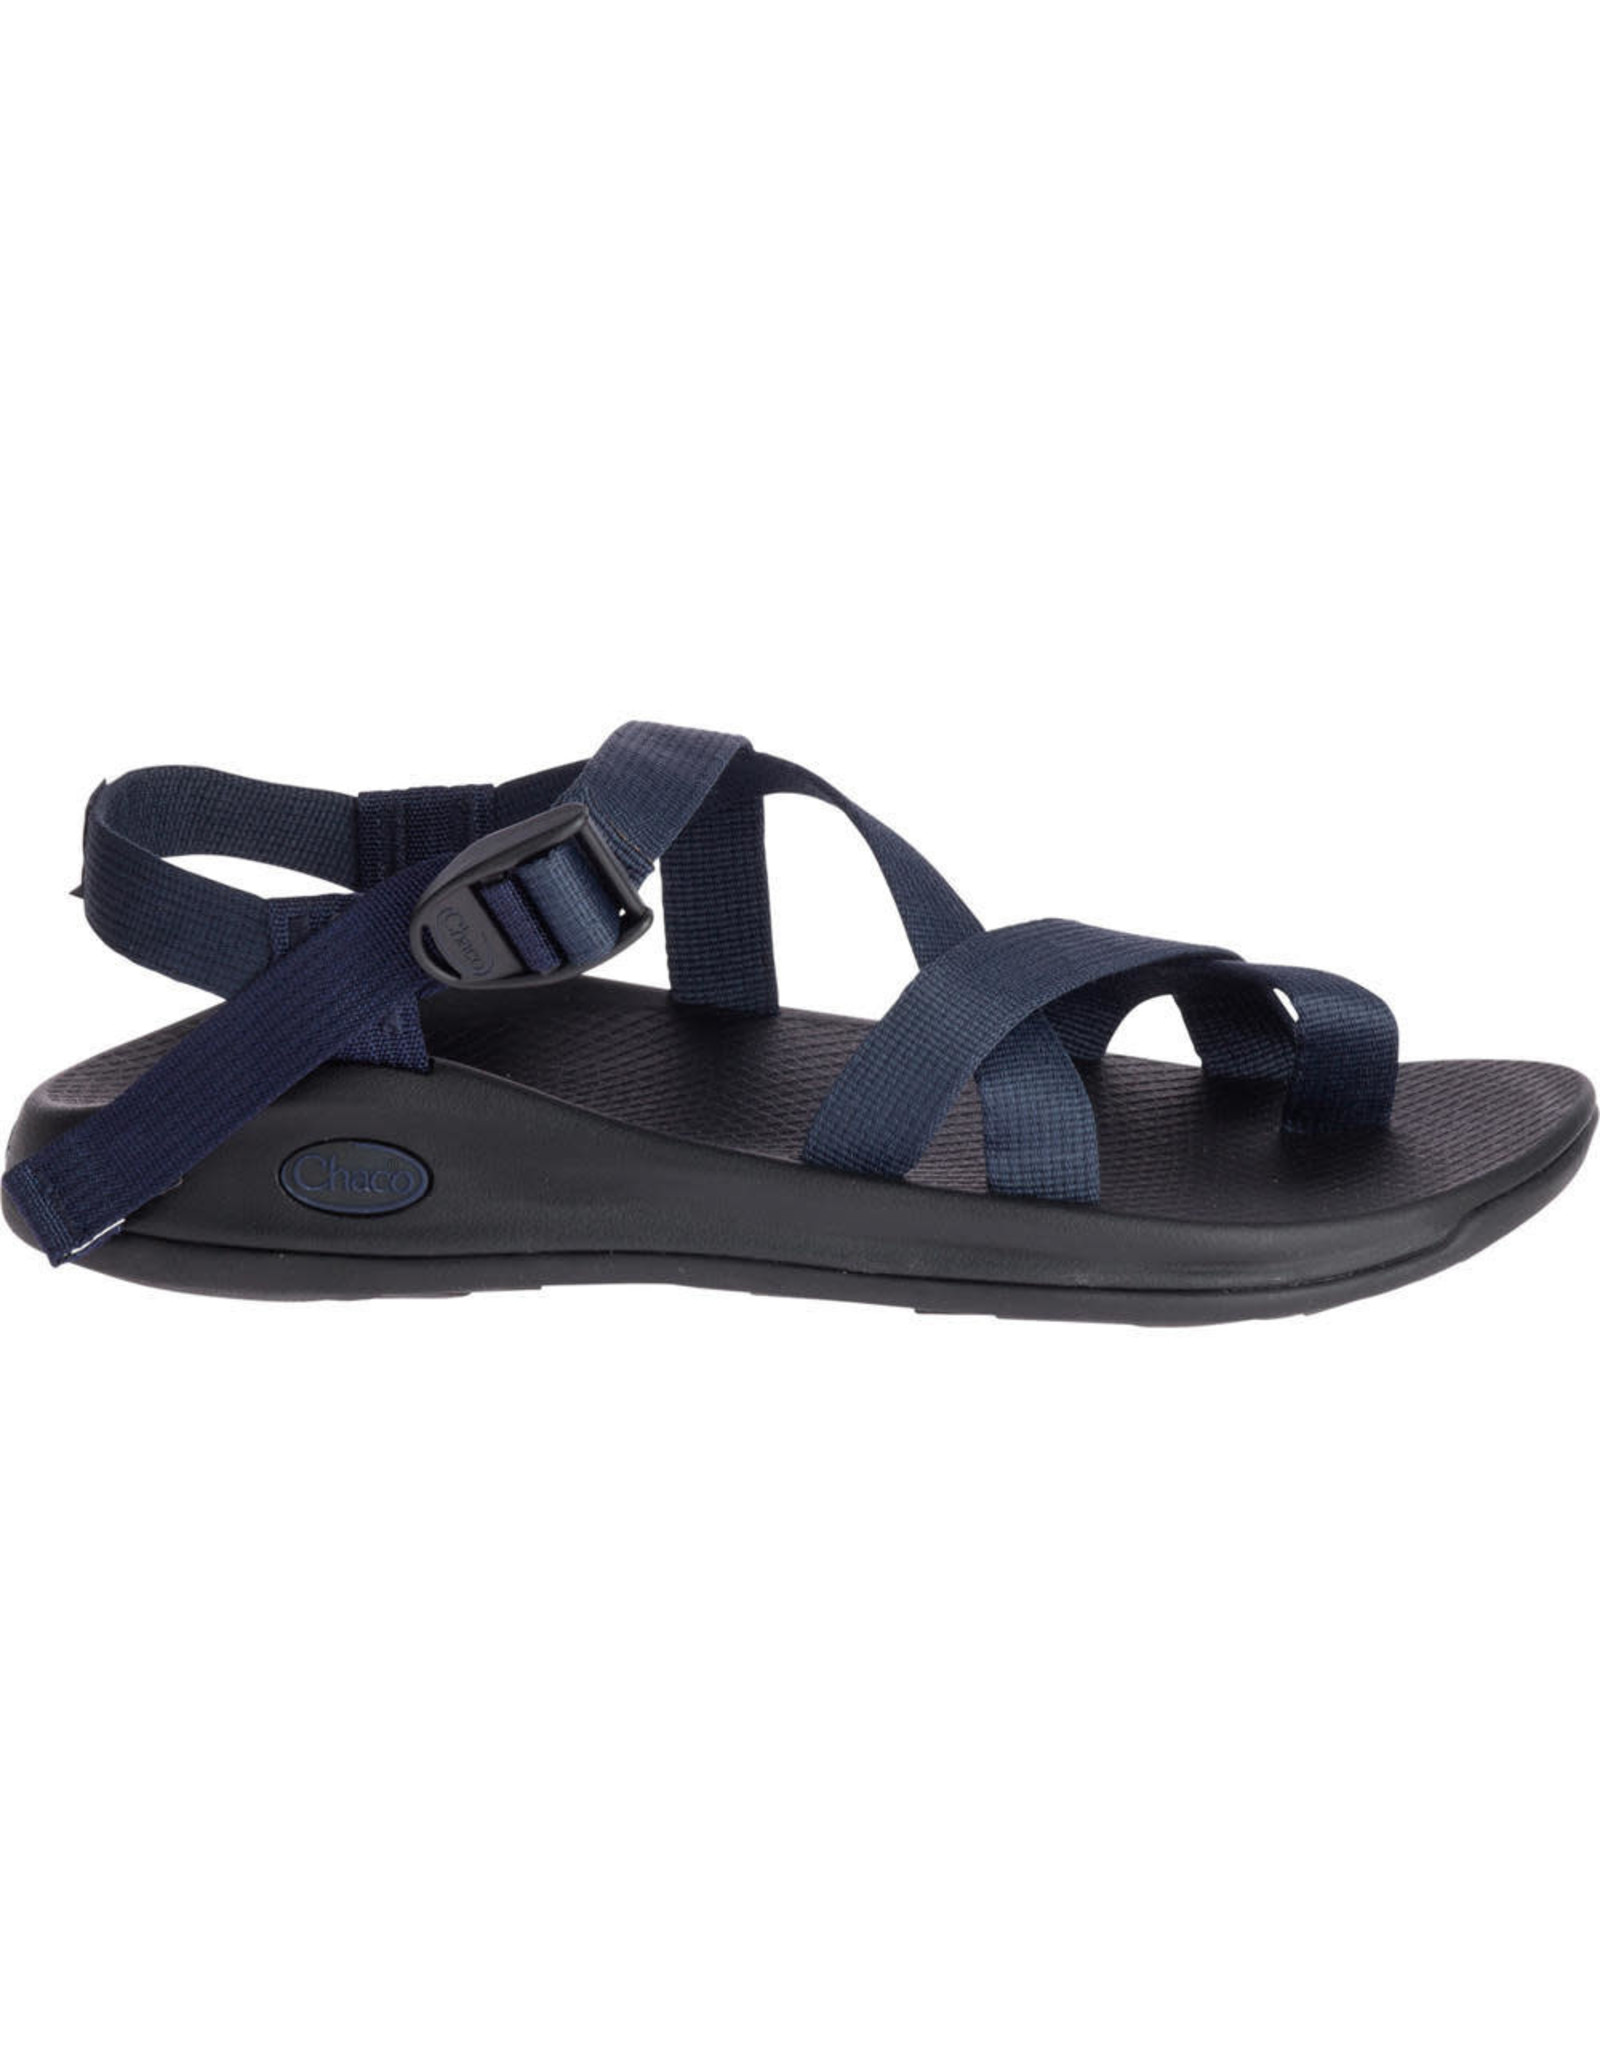 Chaco Men's Z BOULDER 2 / TOTAL ECLIPSE